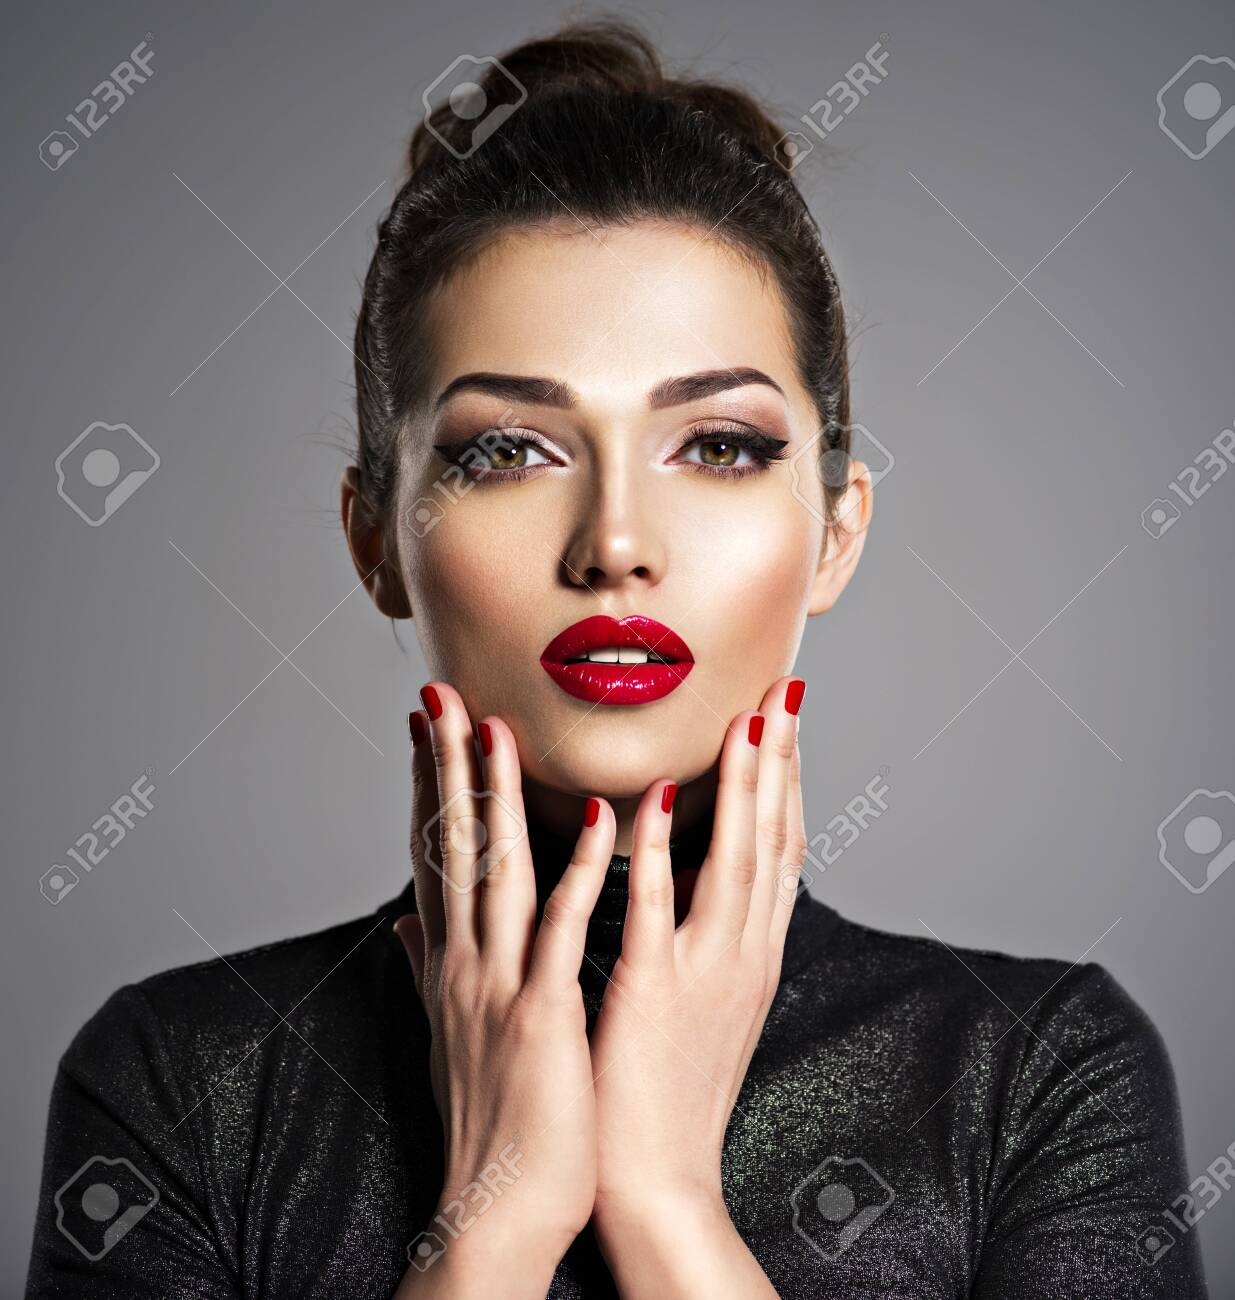 Closeup portrait of beautiful woman with bright make-up and red nails. Sexy young adult girl with red lipstick. - 139477148